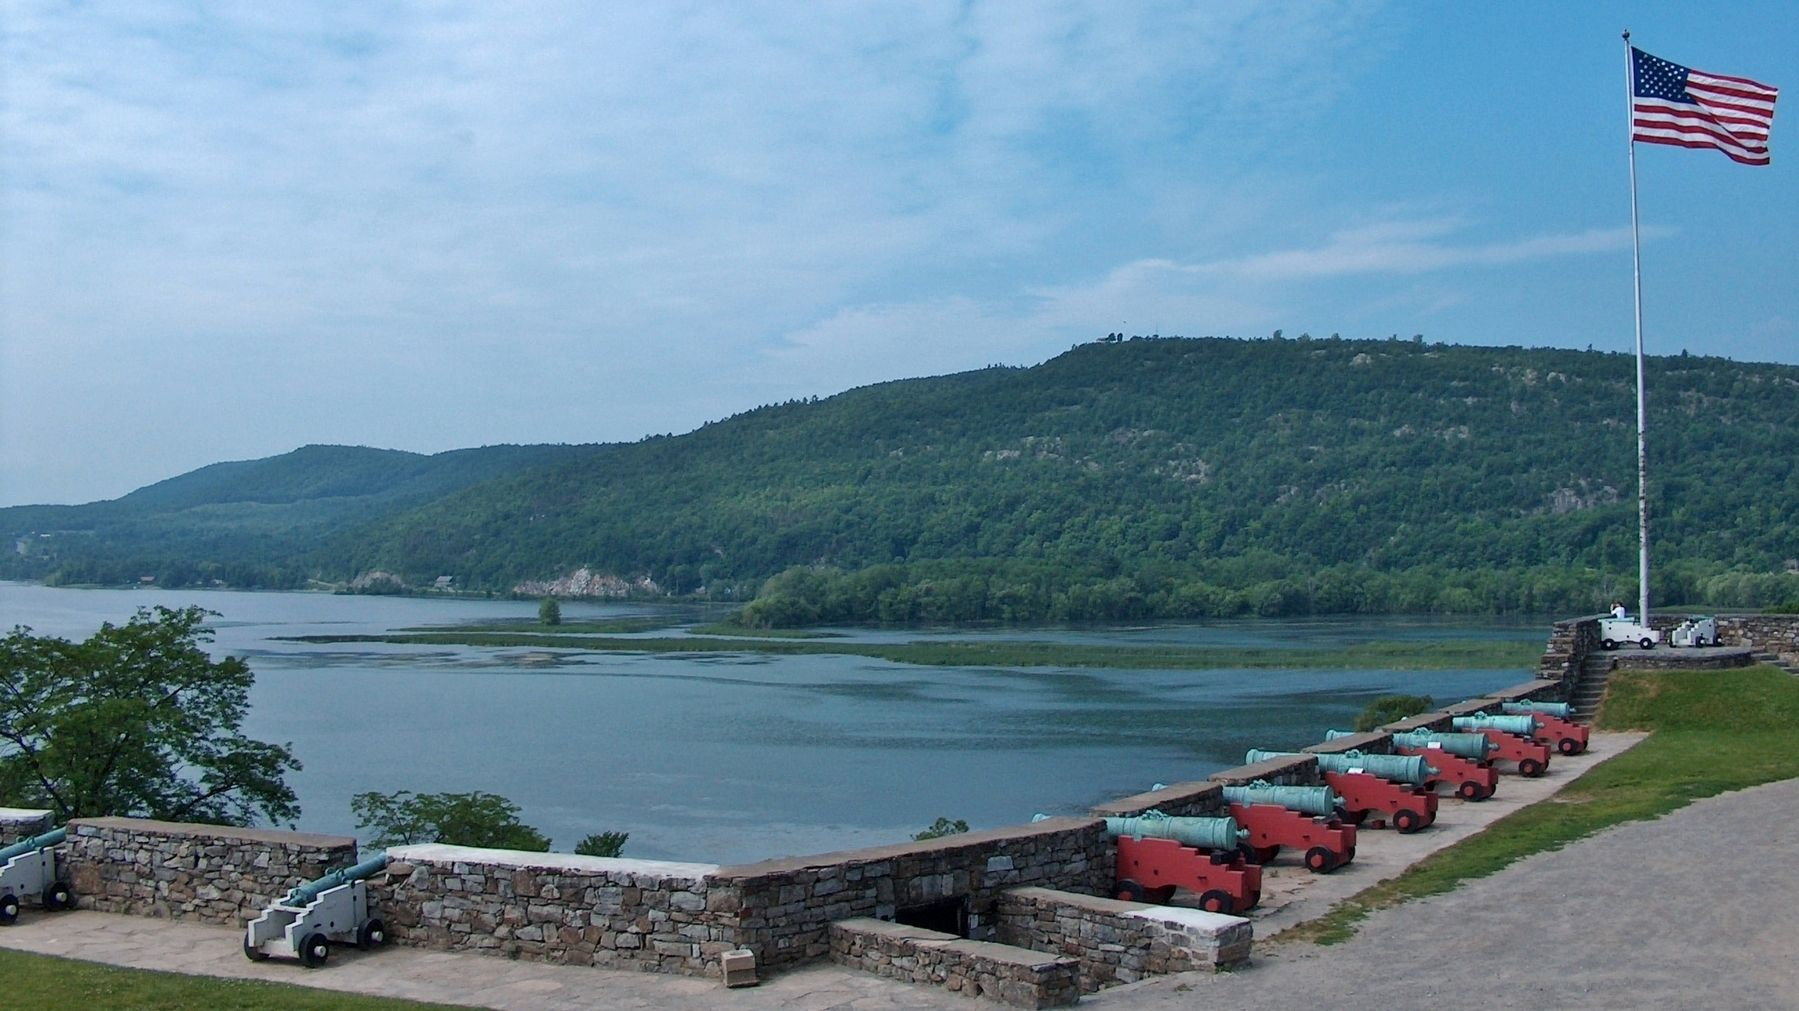 La Chute River / Lake Champlain (<i>view from Fort Ticonderoga</i>) image. Click for full size.